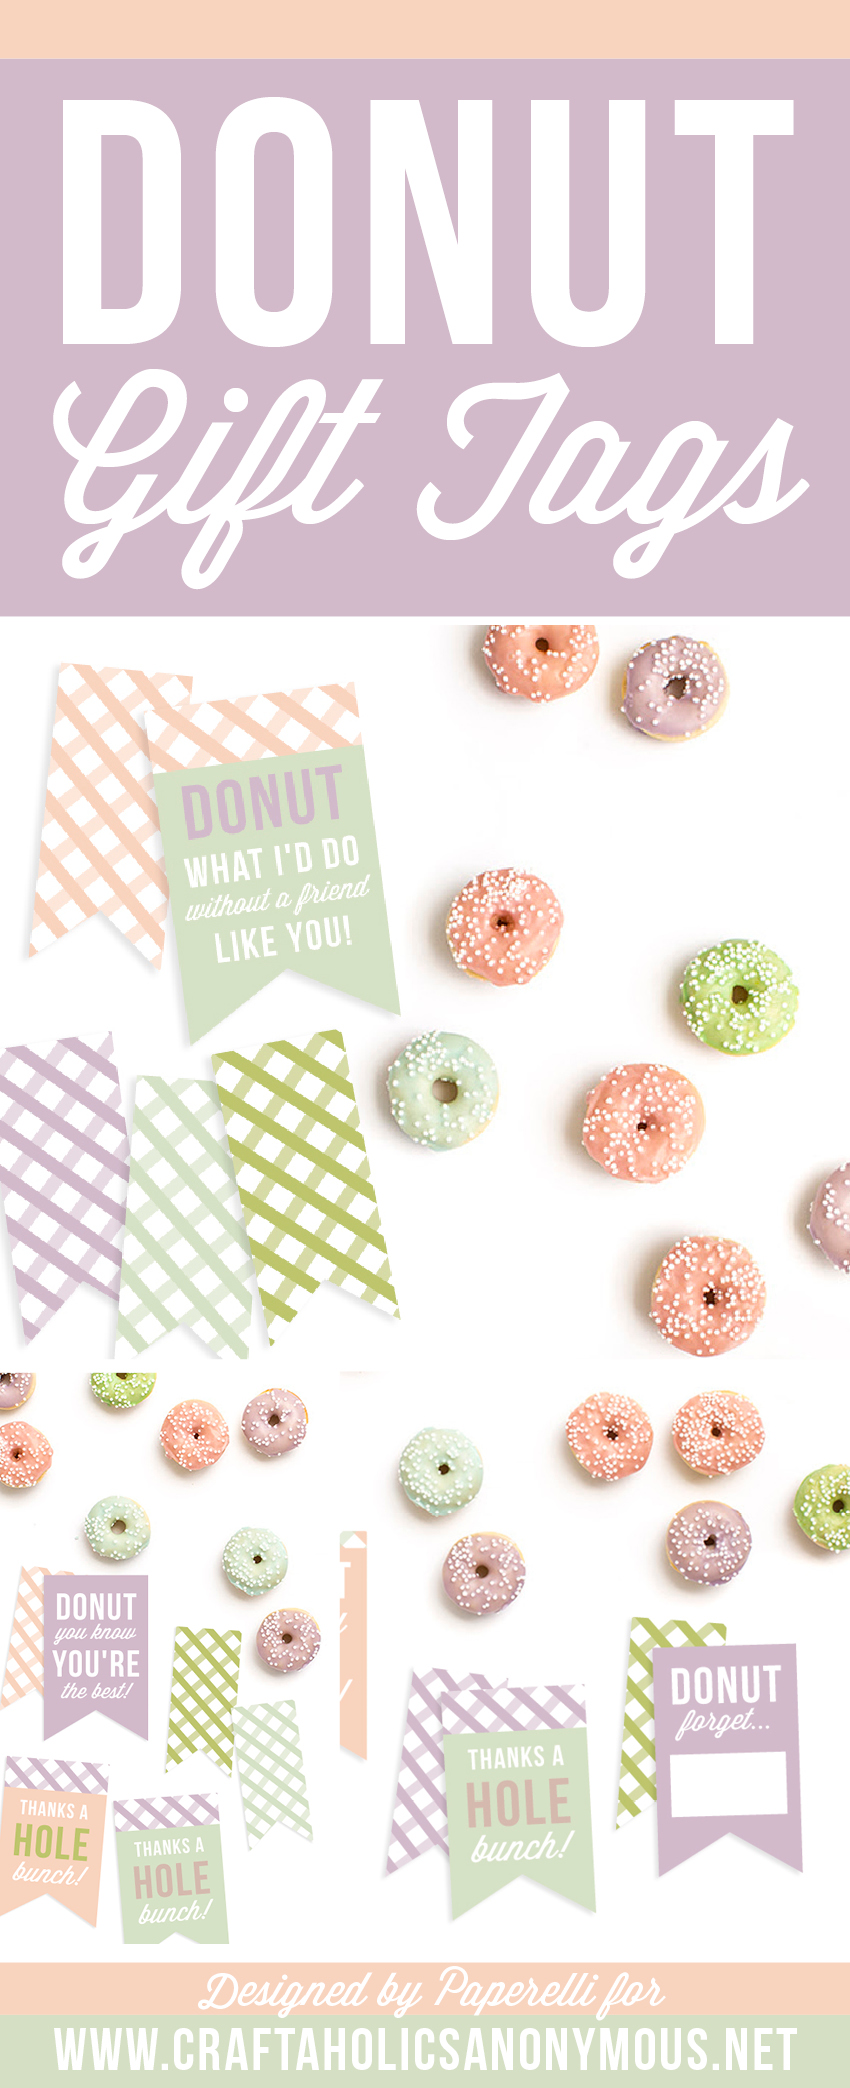 Free Donut Printable Tags on www.craftaholicsanonymous.net